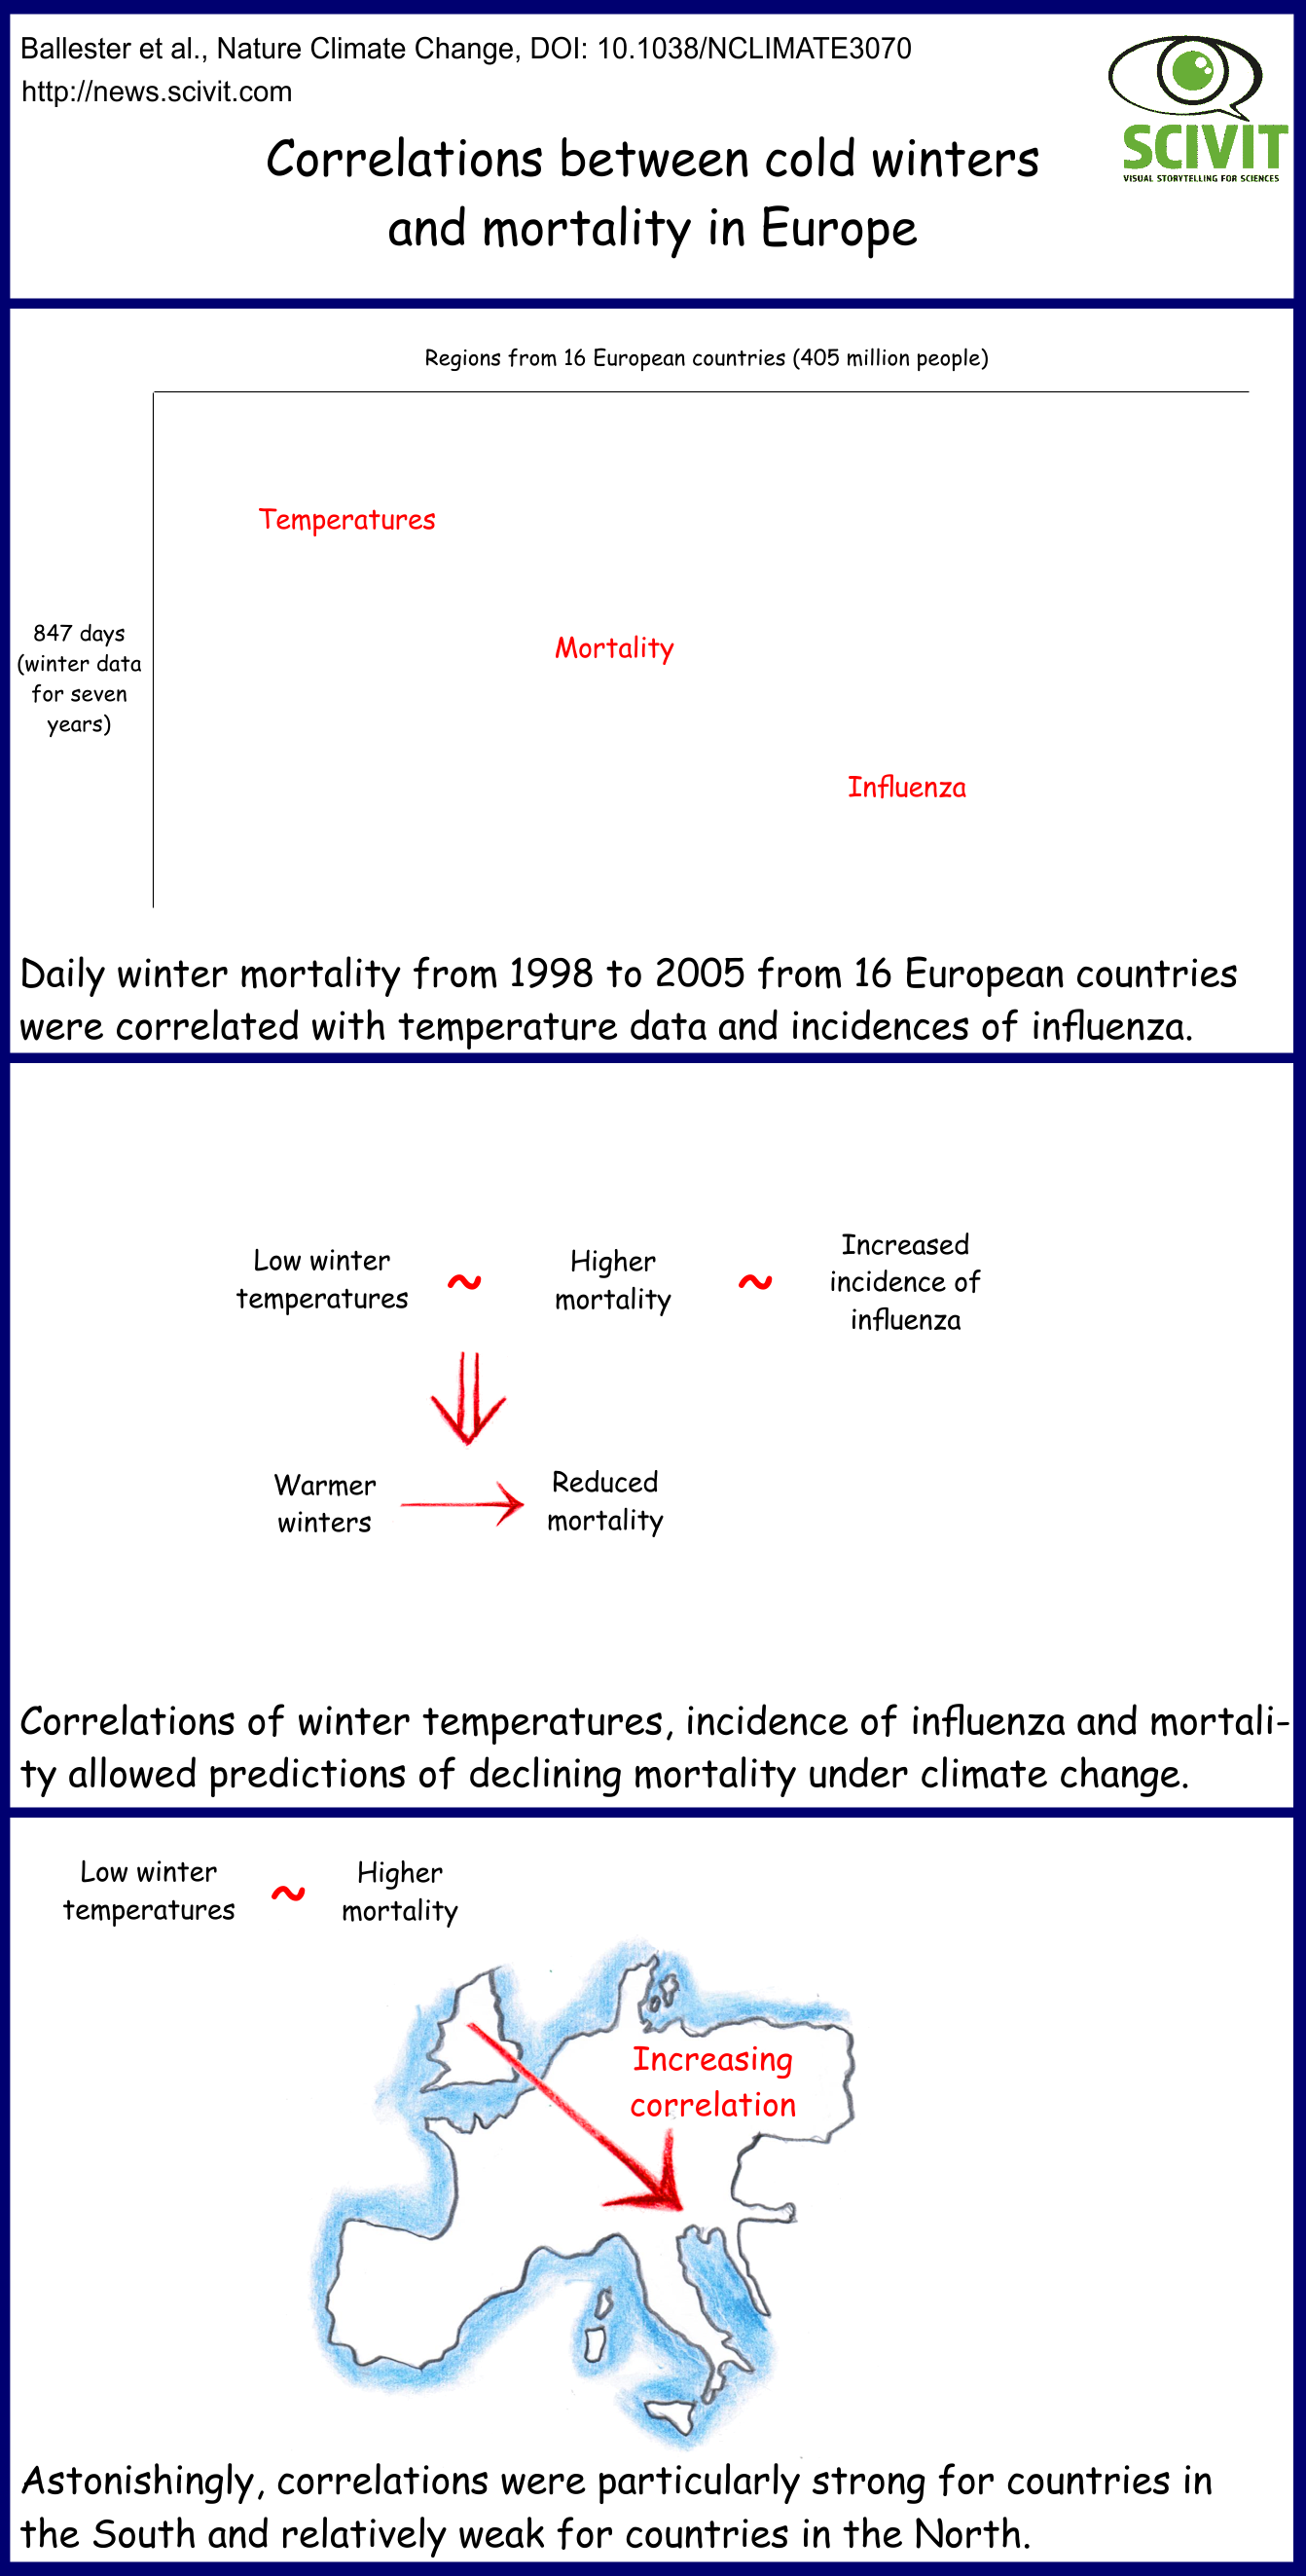 Correlations between cold winters and mortality in Europe